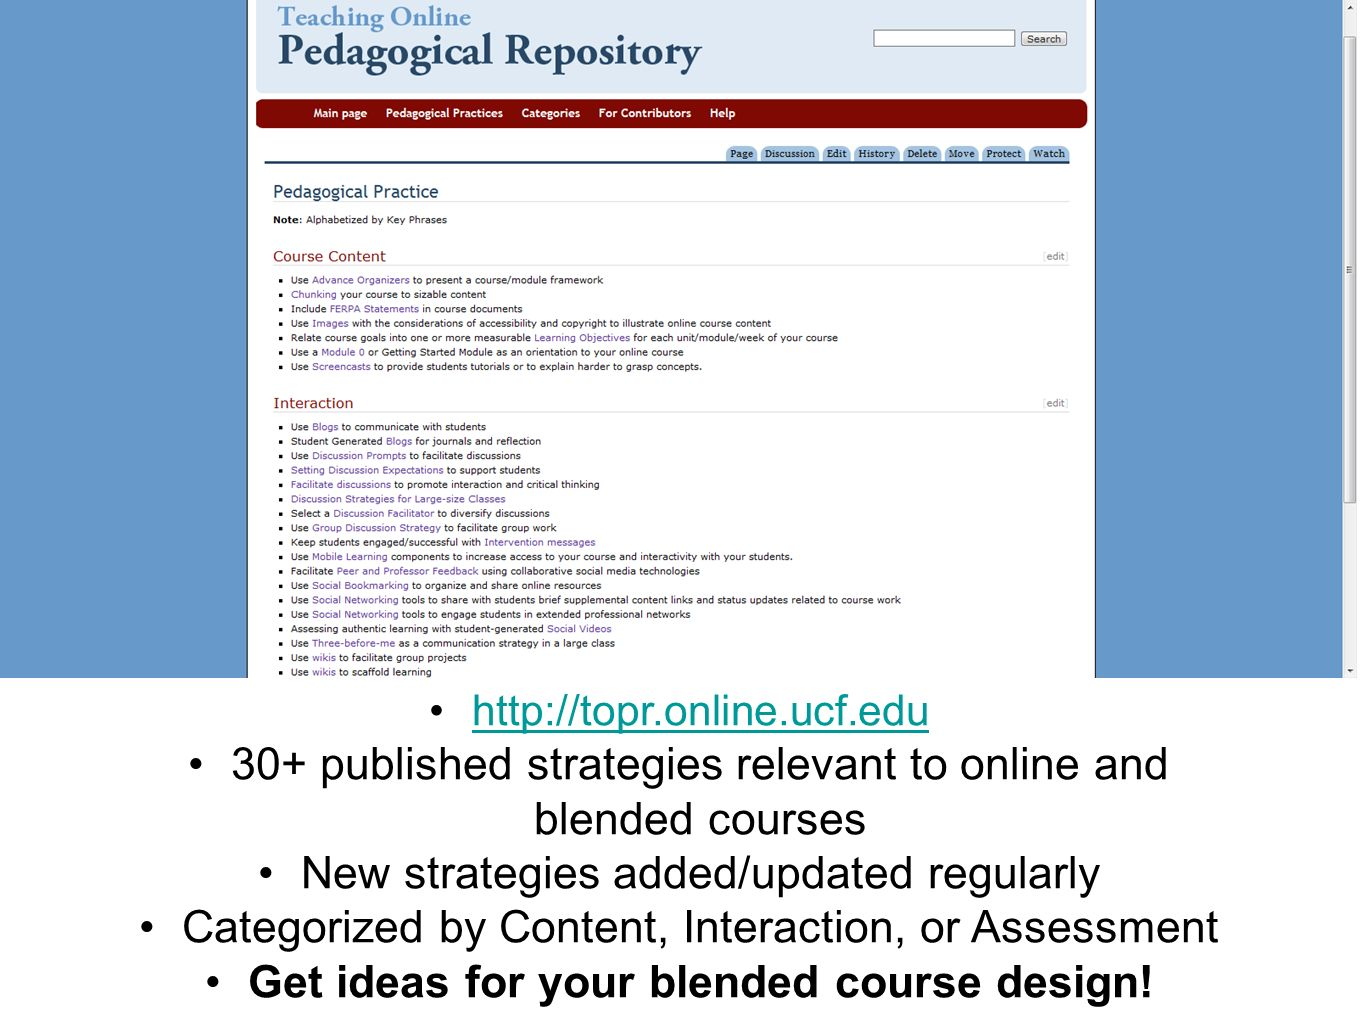 http://topr.online.ucf.edu 30+ published strategies relevant to online and blended courses New strategies added/updated regularly Categorized by Content, Interaction, or Assessment Get ideas for your blended course design!